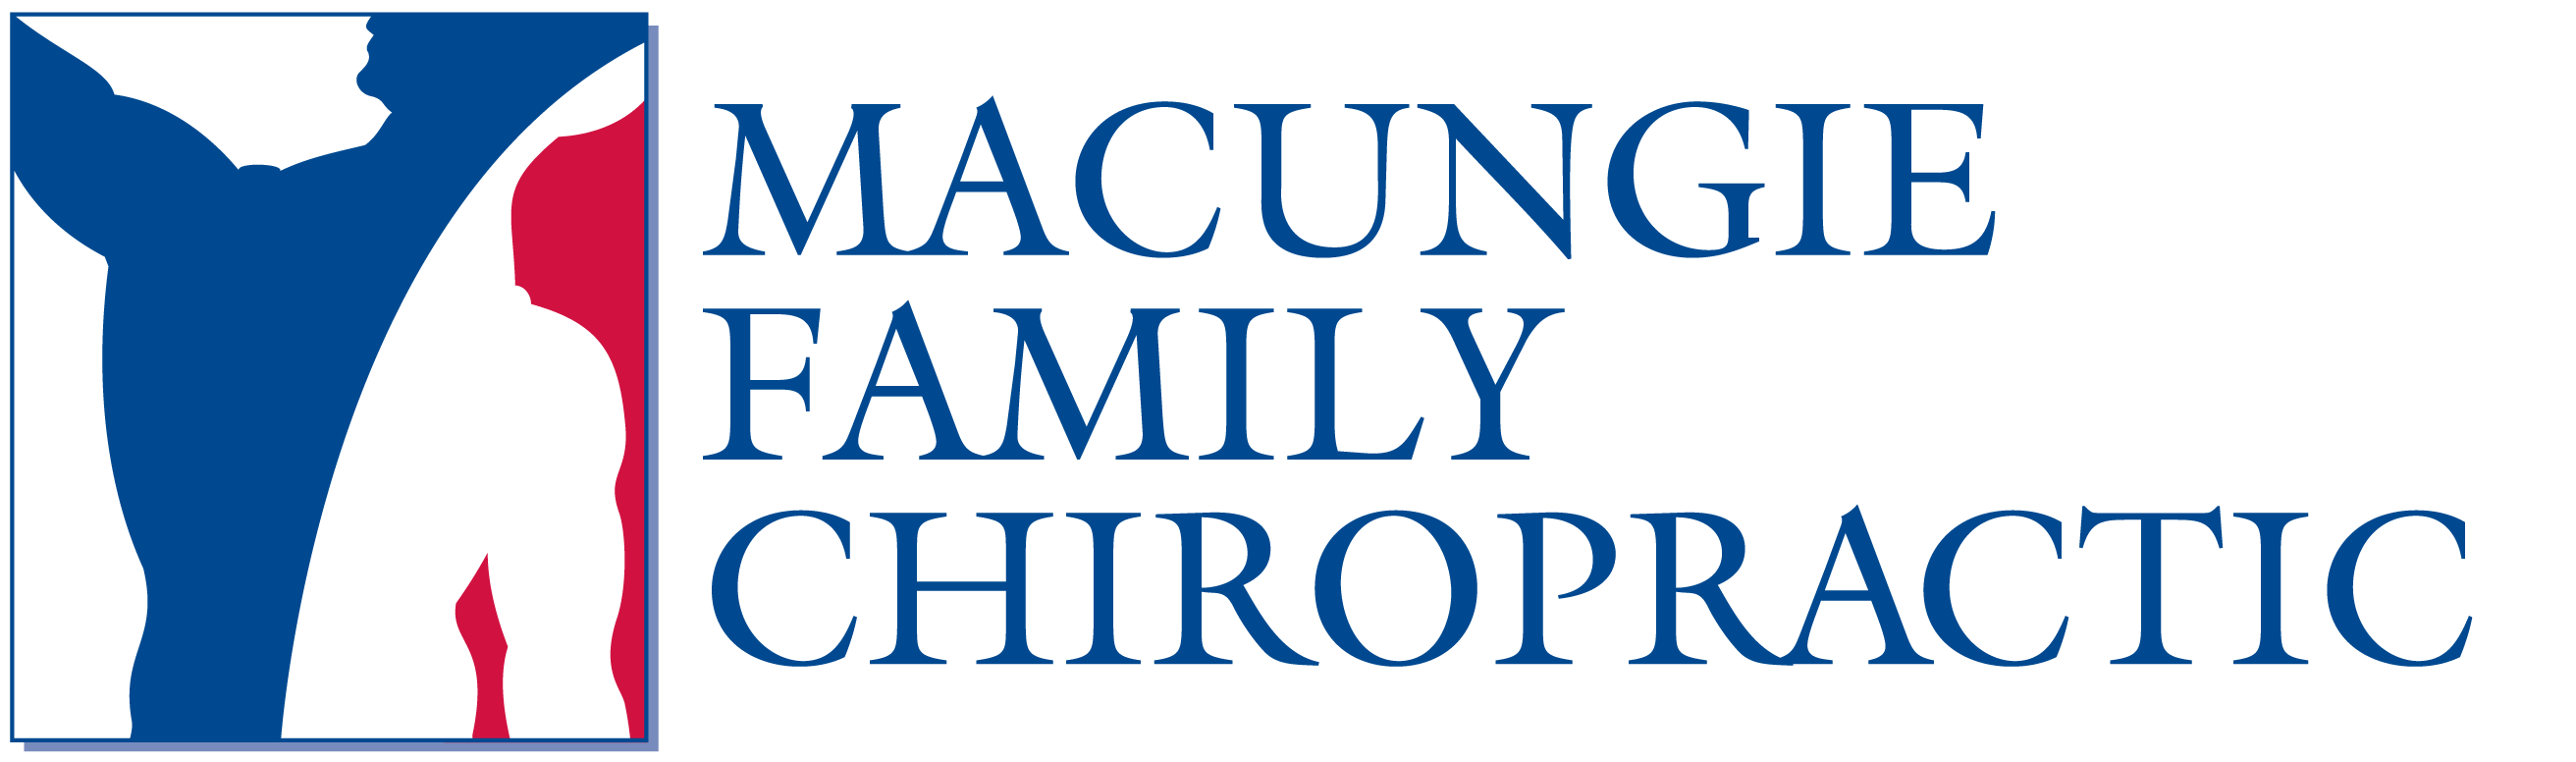 Macungie Family Chiropractic